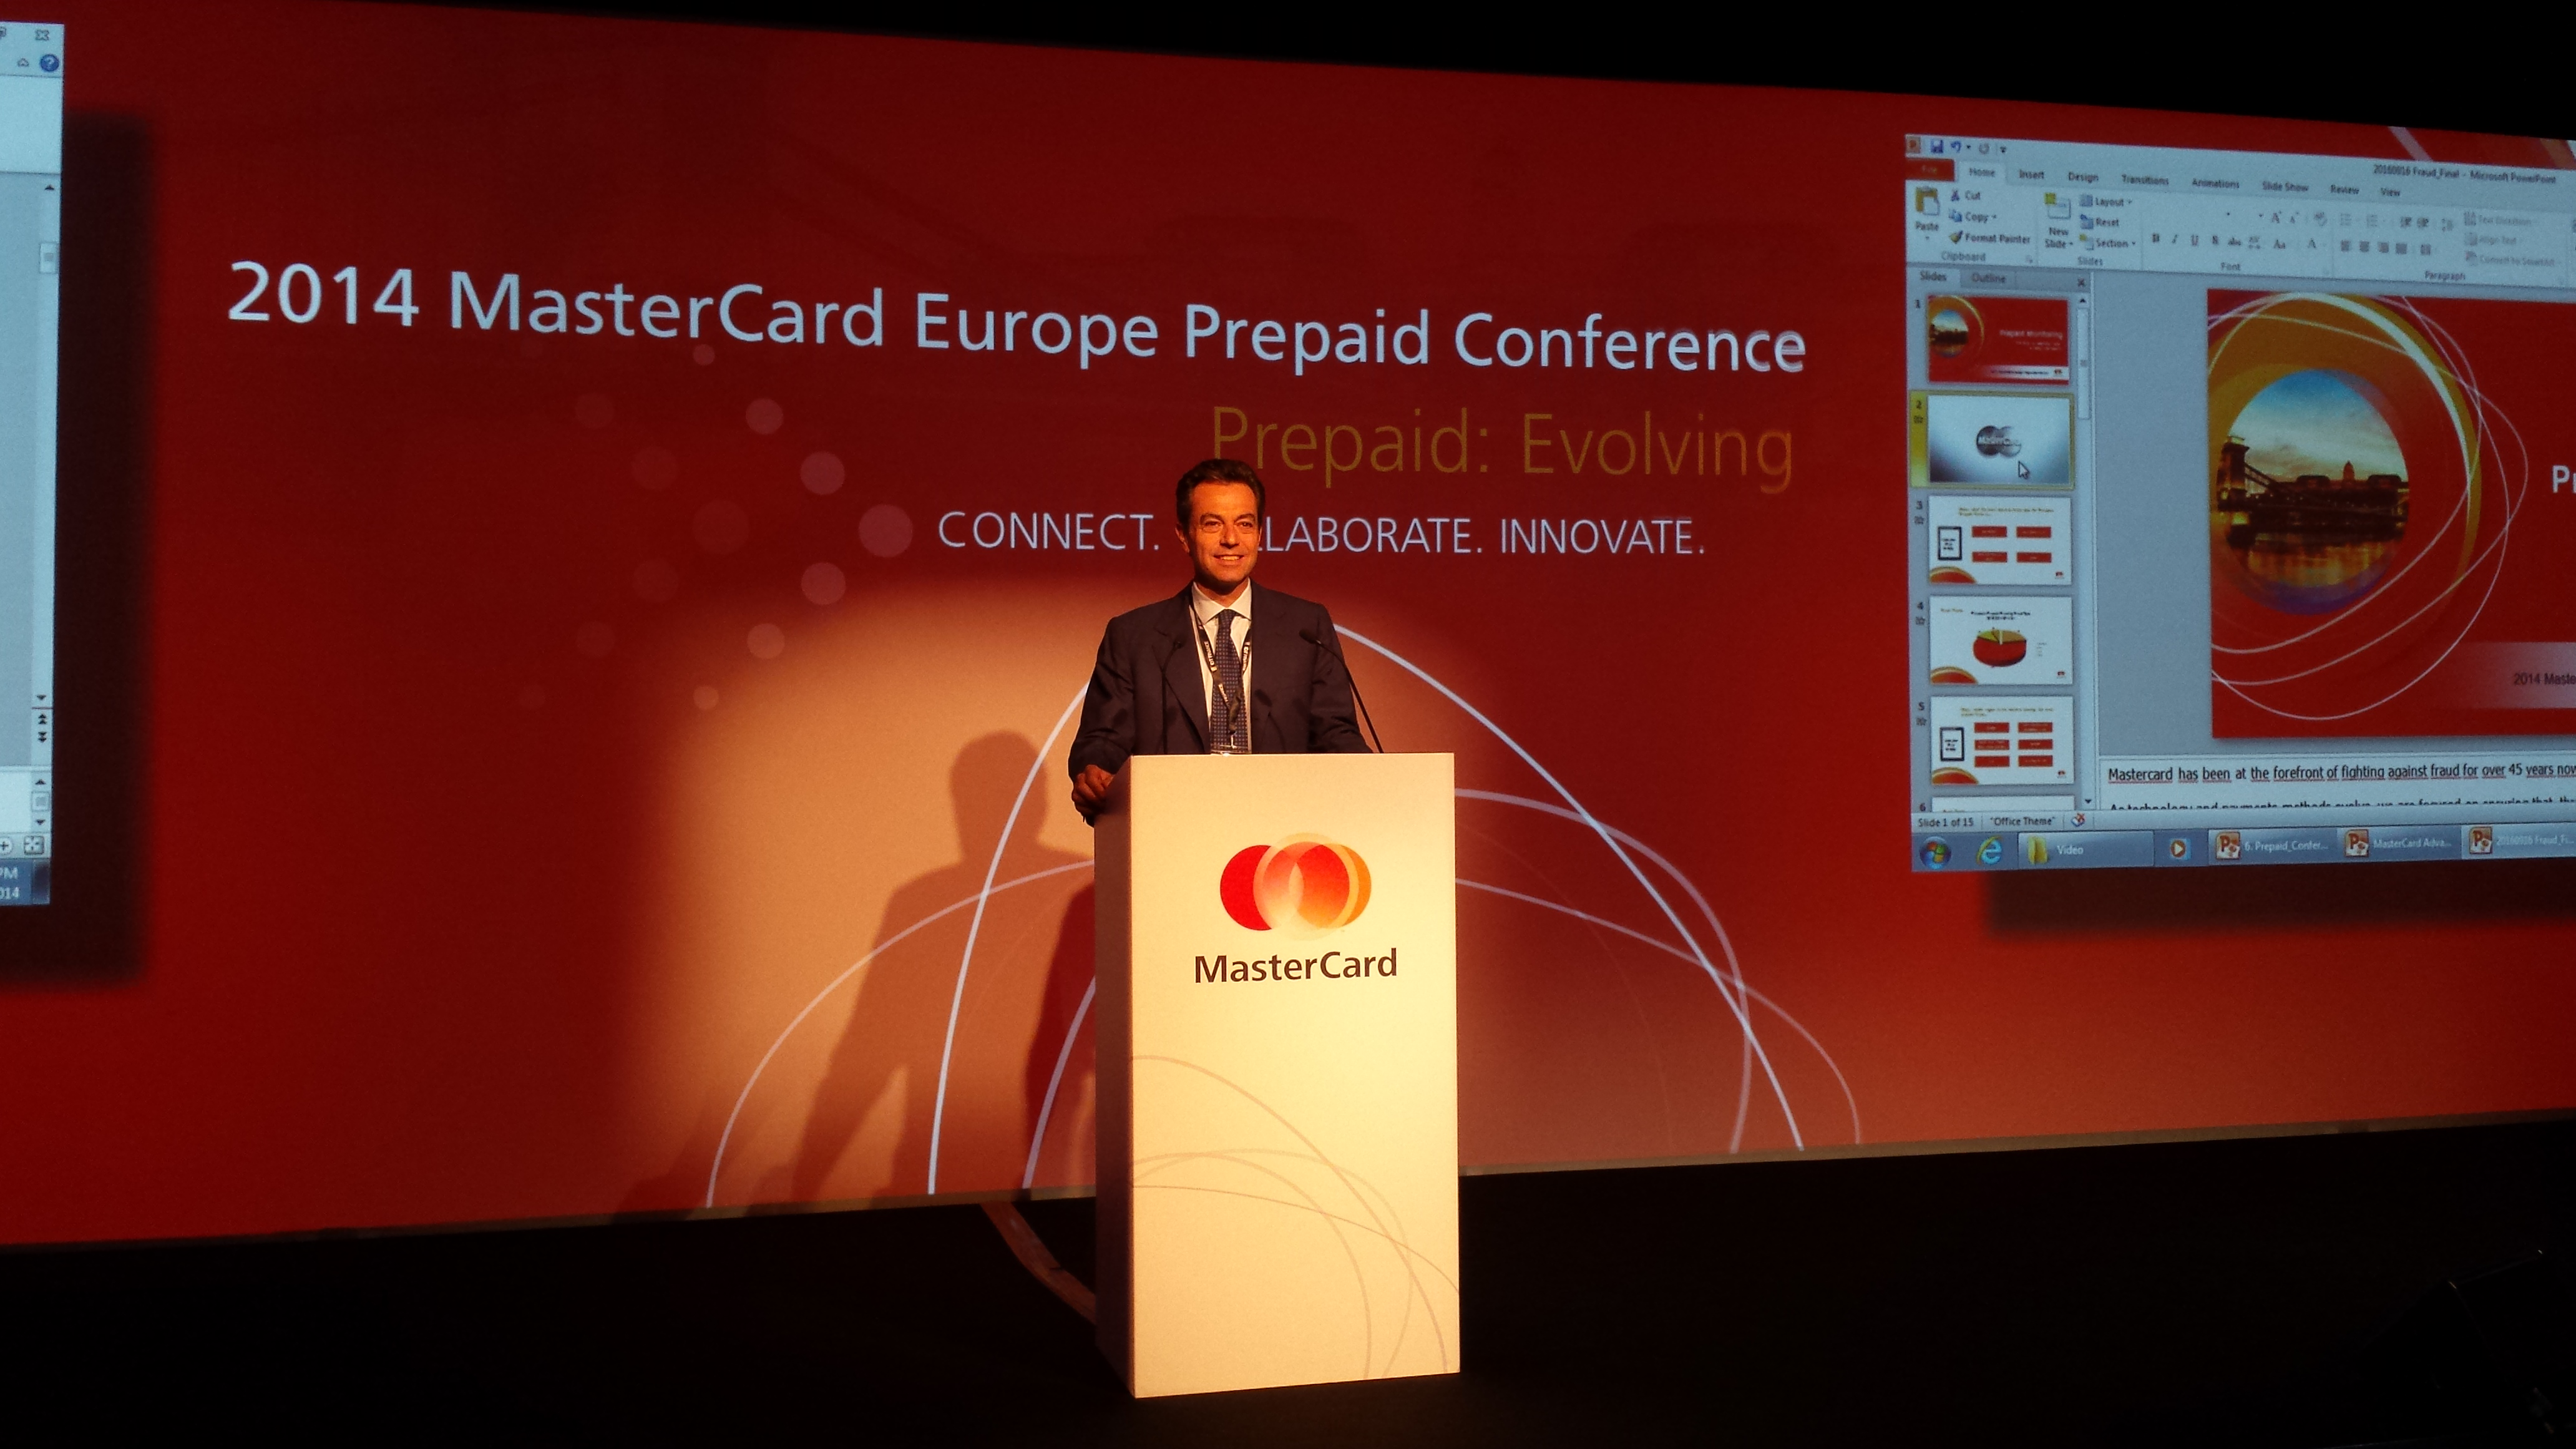 MasterCard Prepaid Conference: How One Card Can Affect A